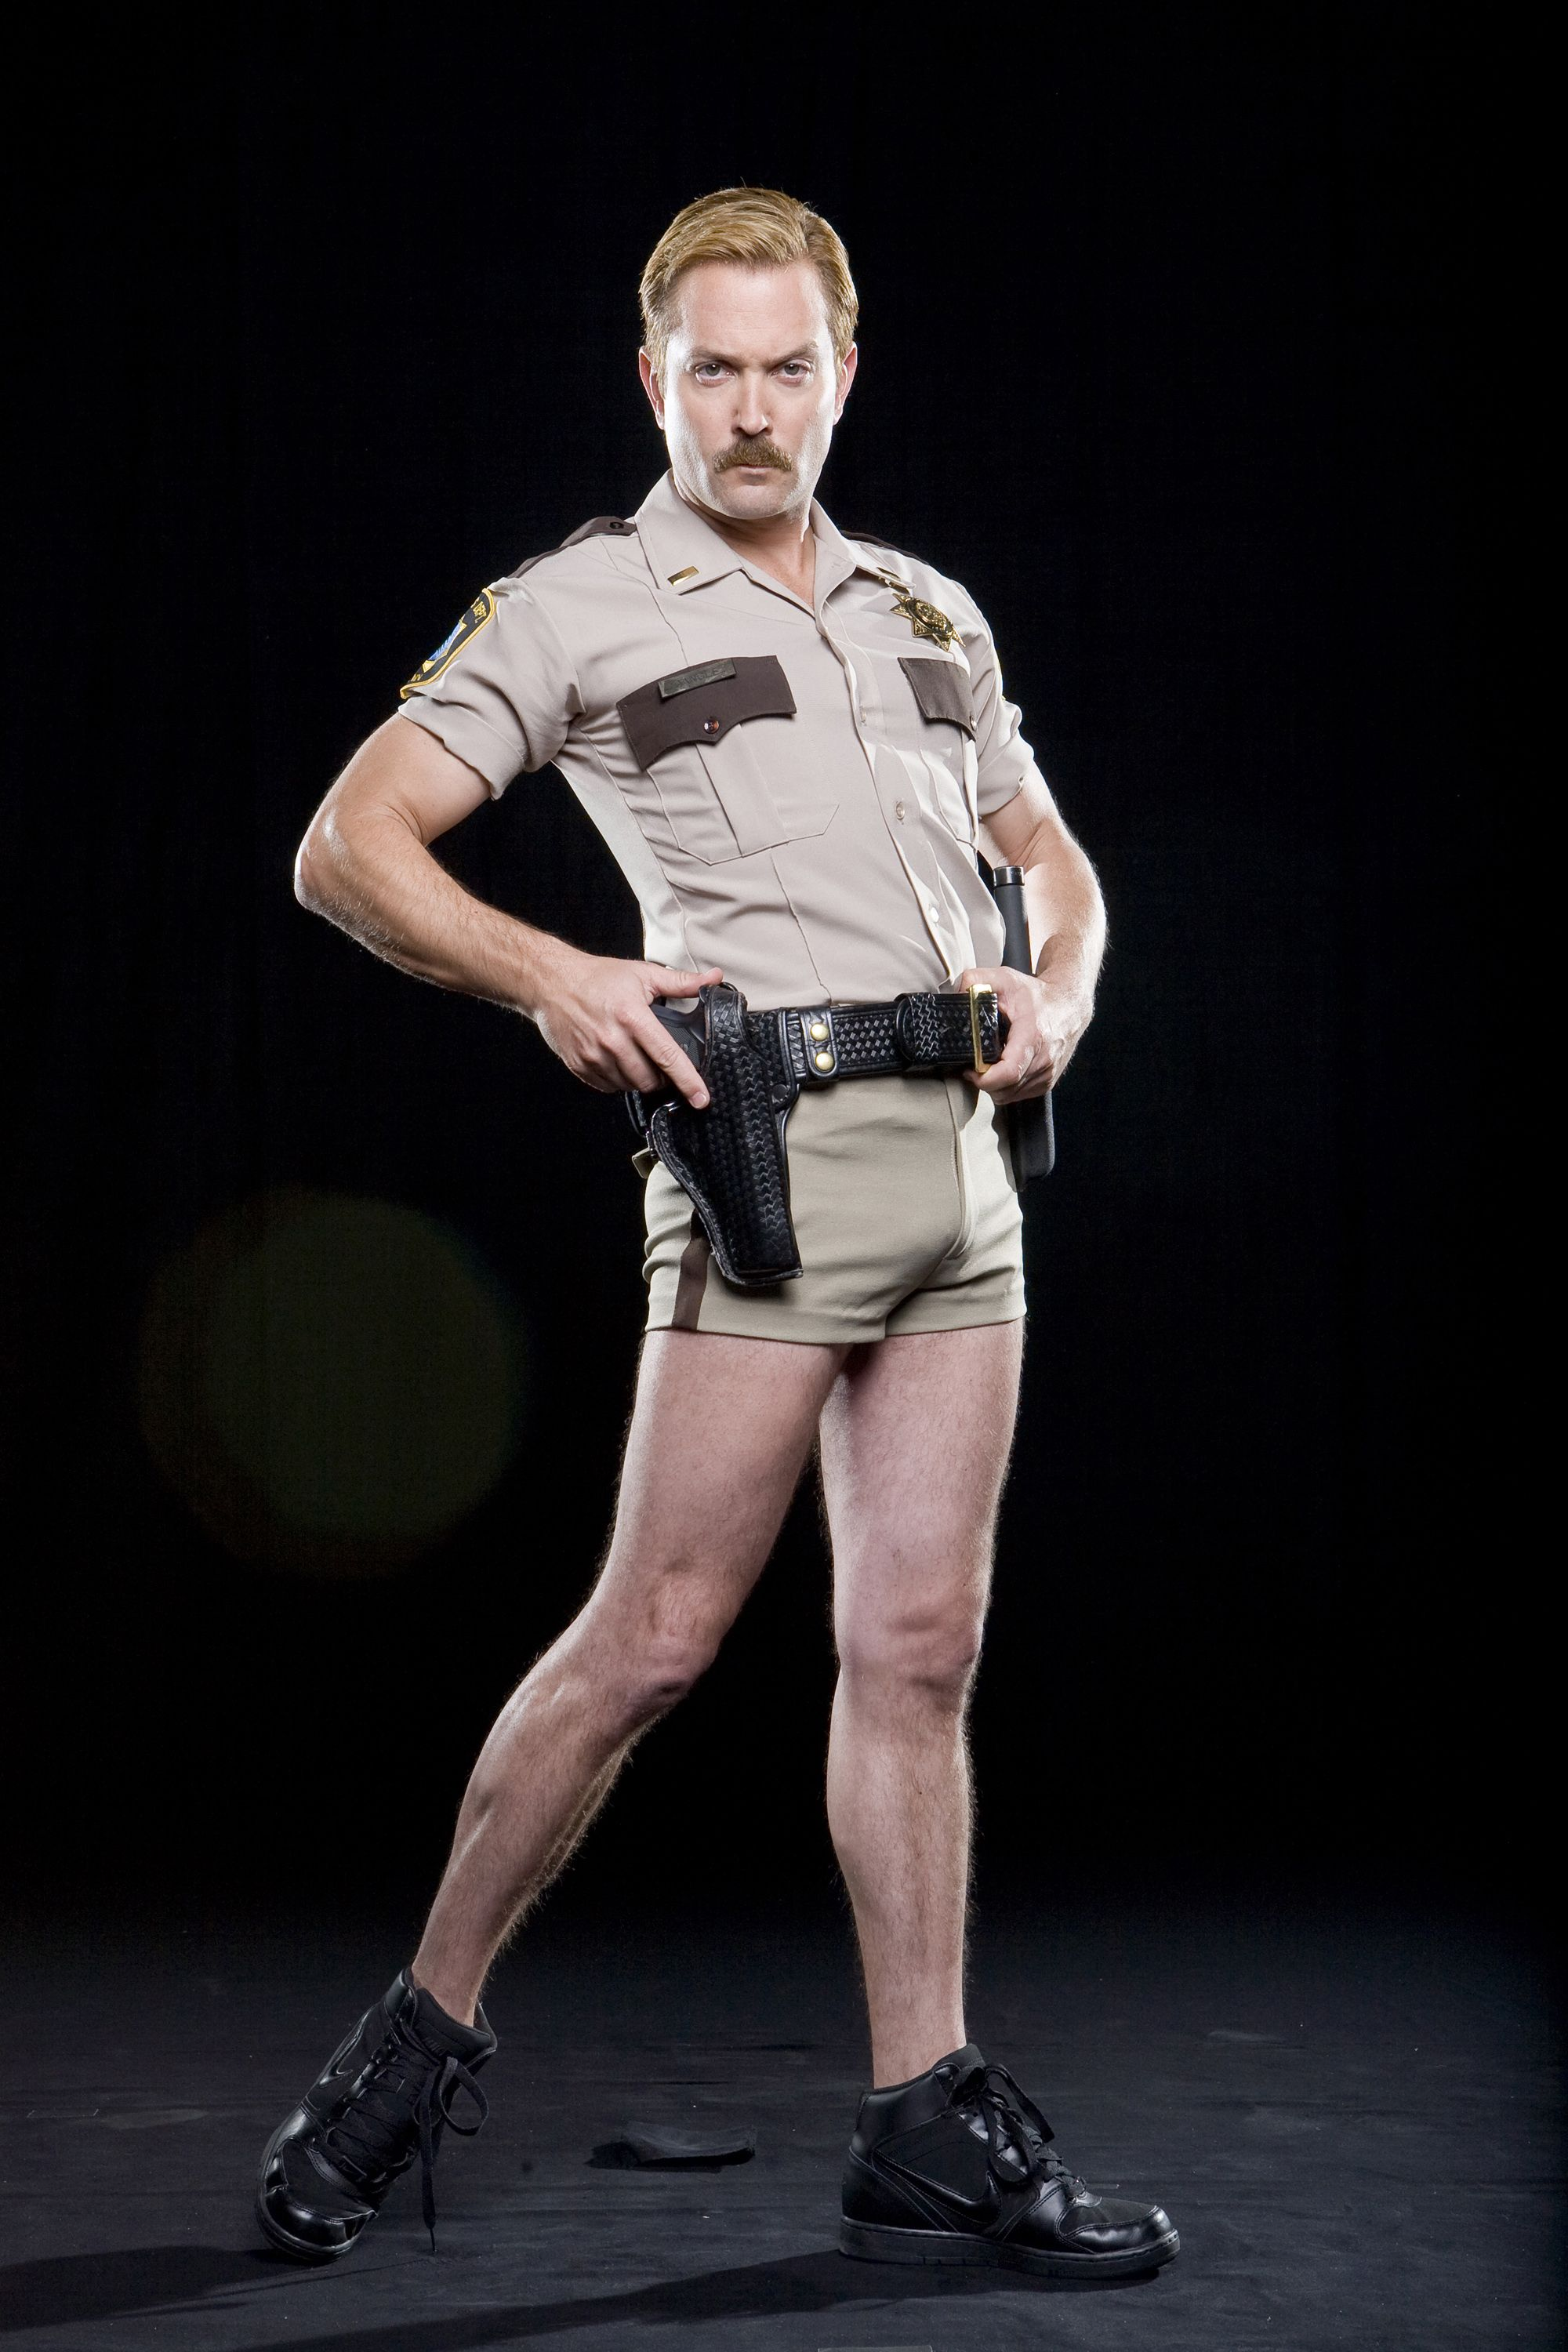 Lt Dangle Thomas Lennon Funny Pinterest Reno 911 Funny And